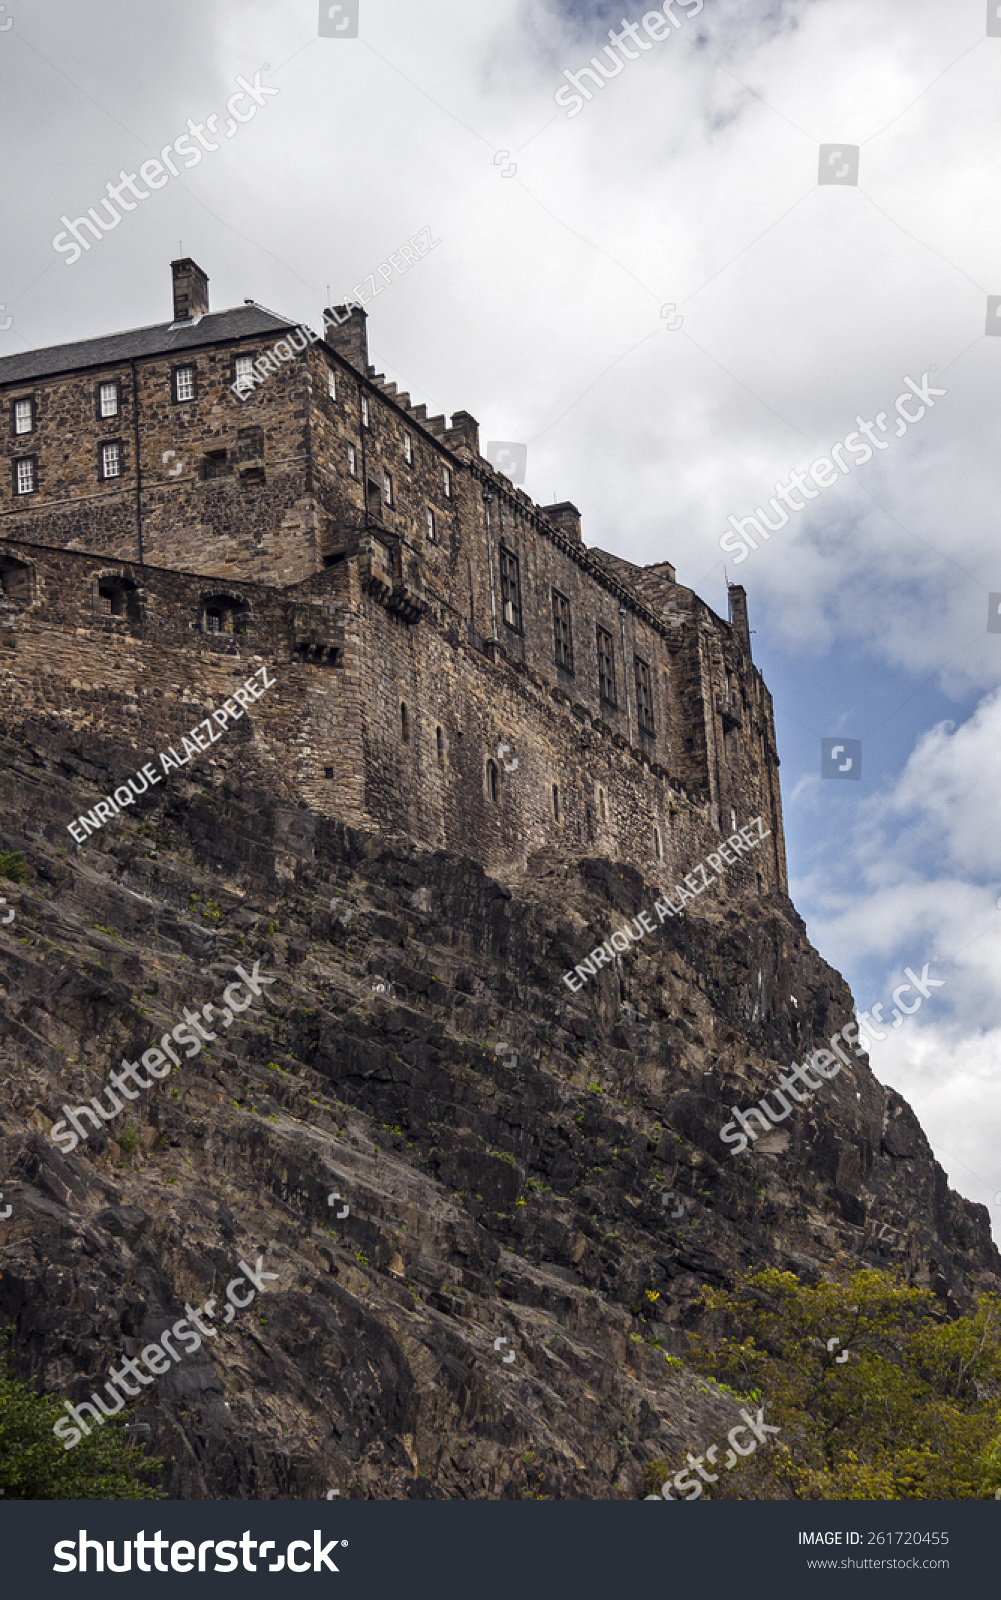 stock edinburgh castle - photo #42